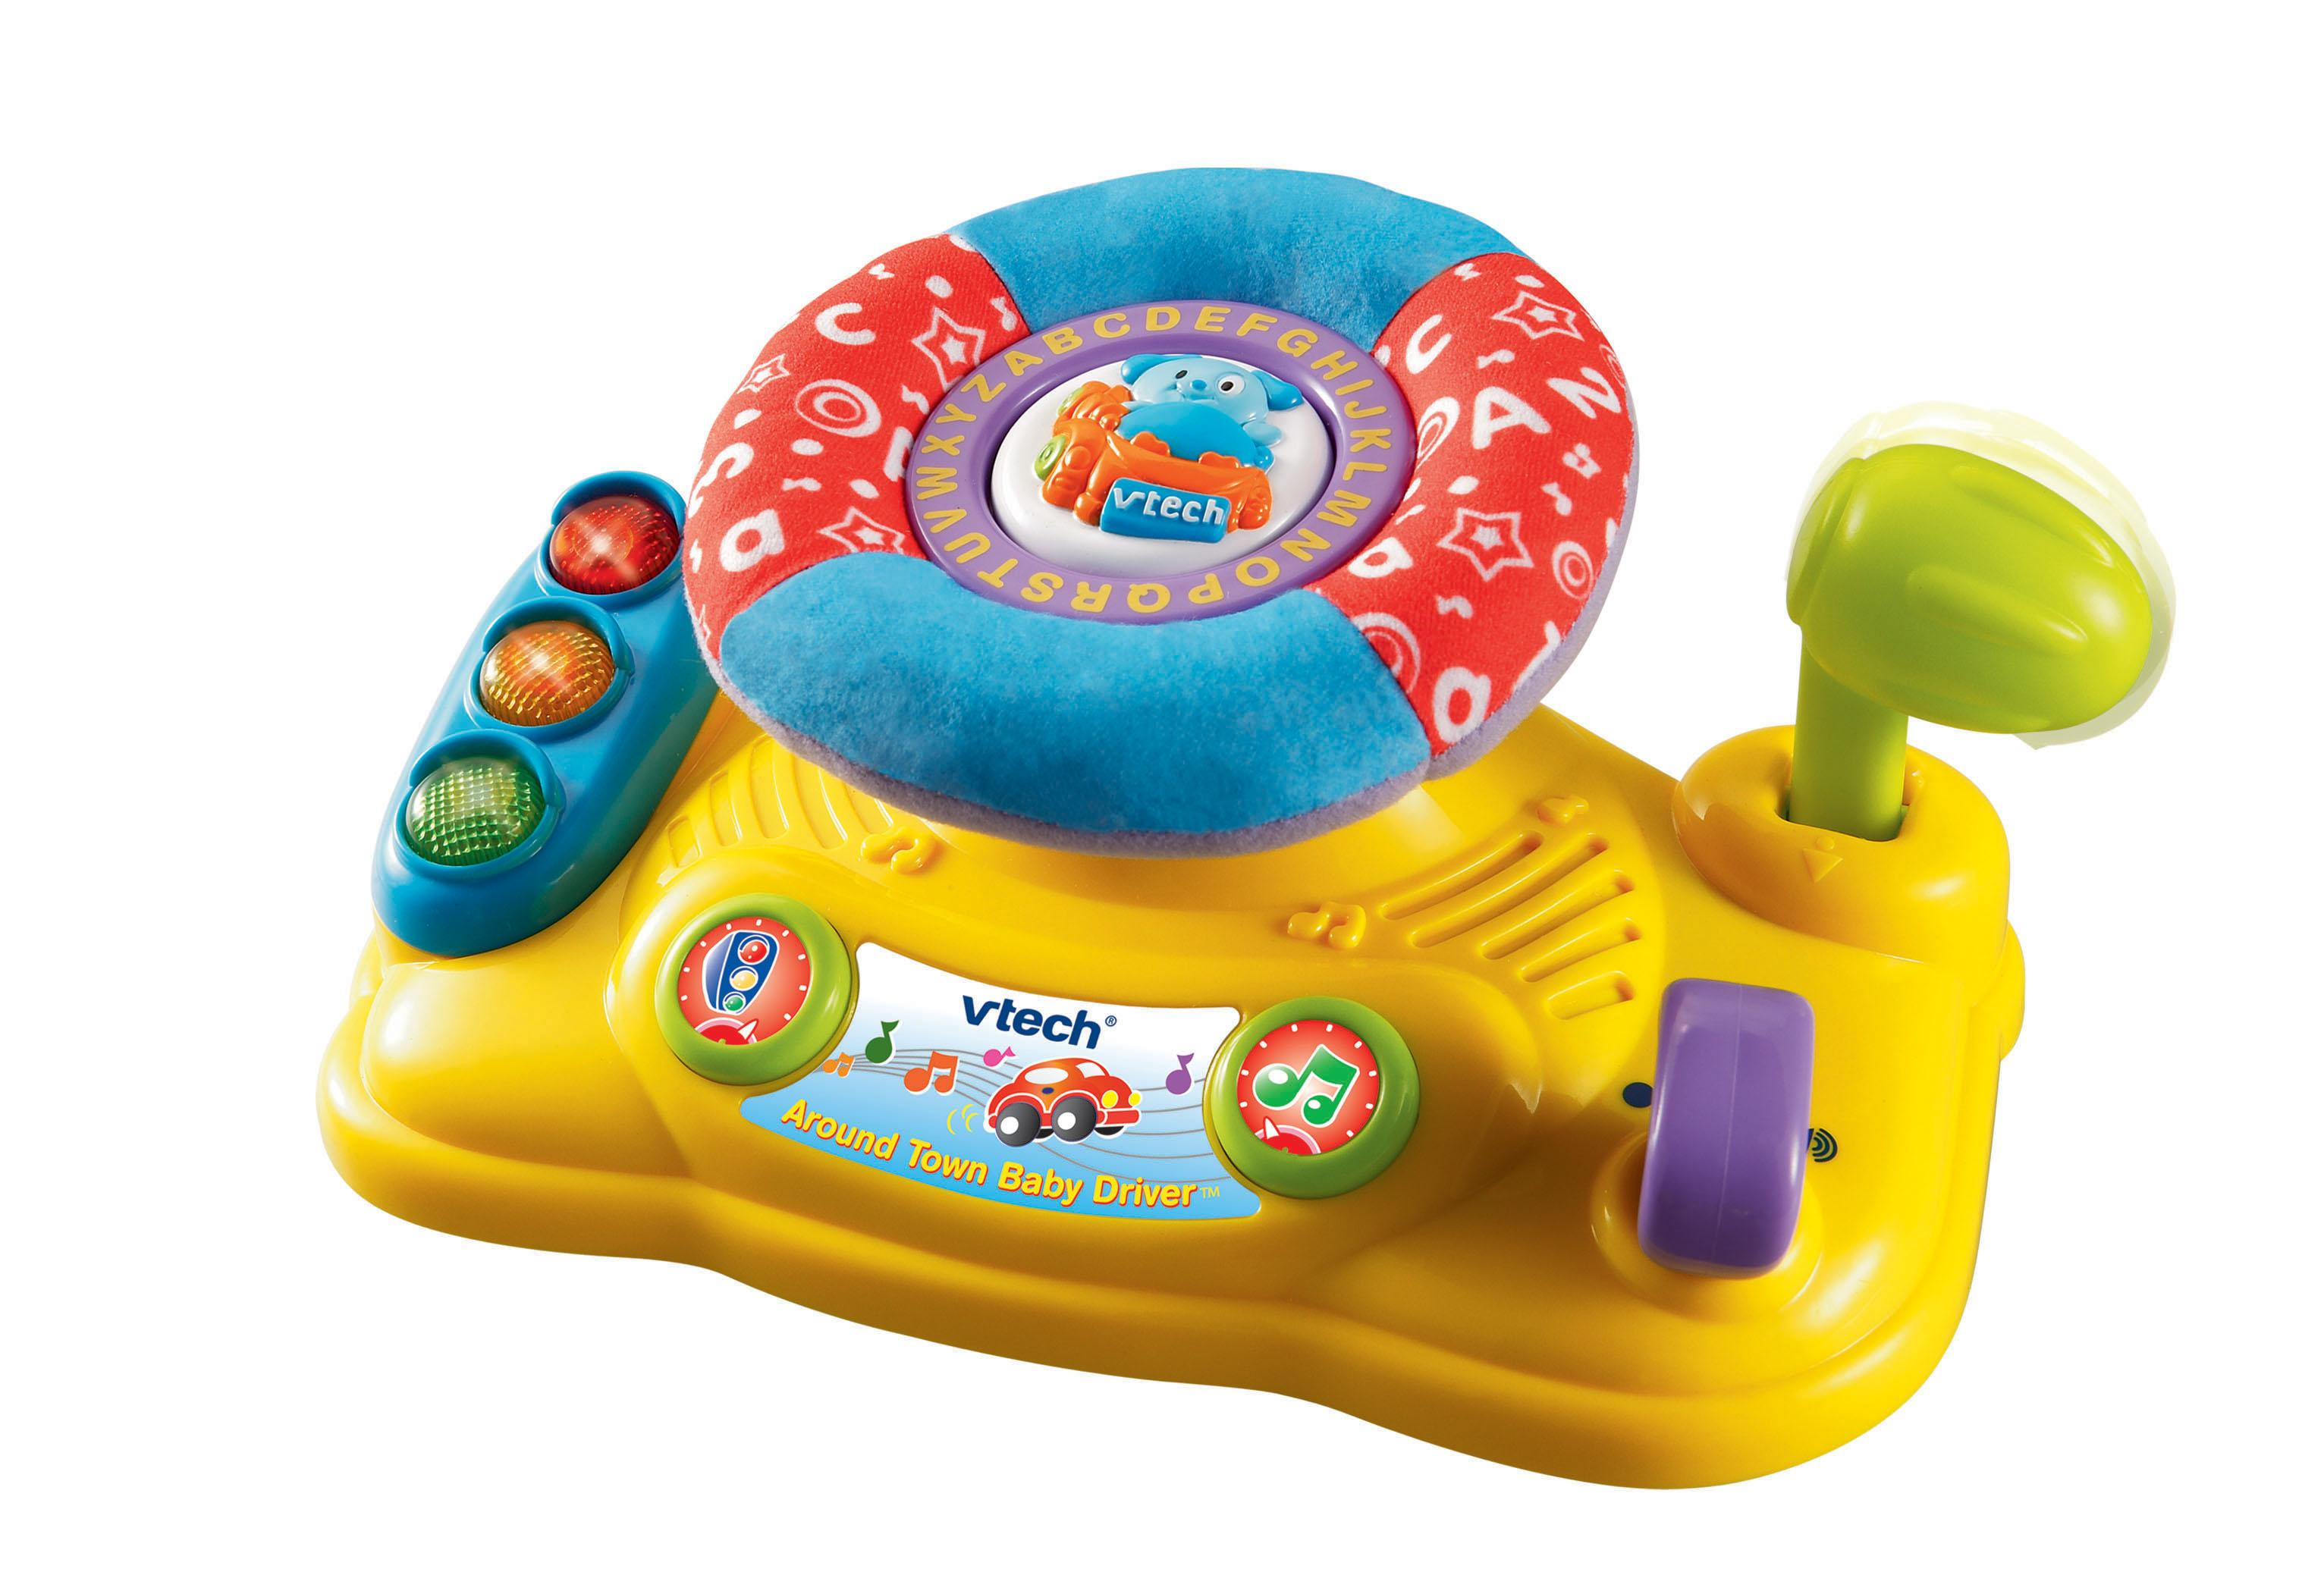 Amazon.com: VTech Baby Around Town Baby Driver: Toys & Games